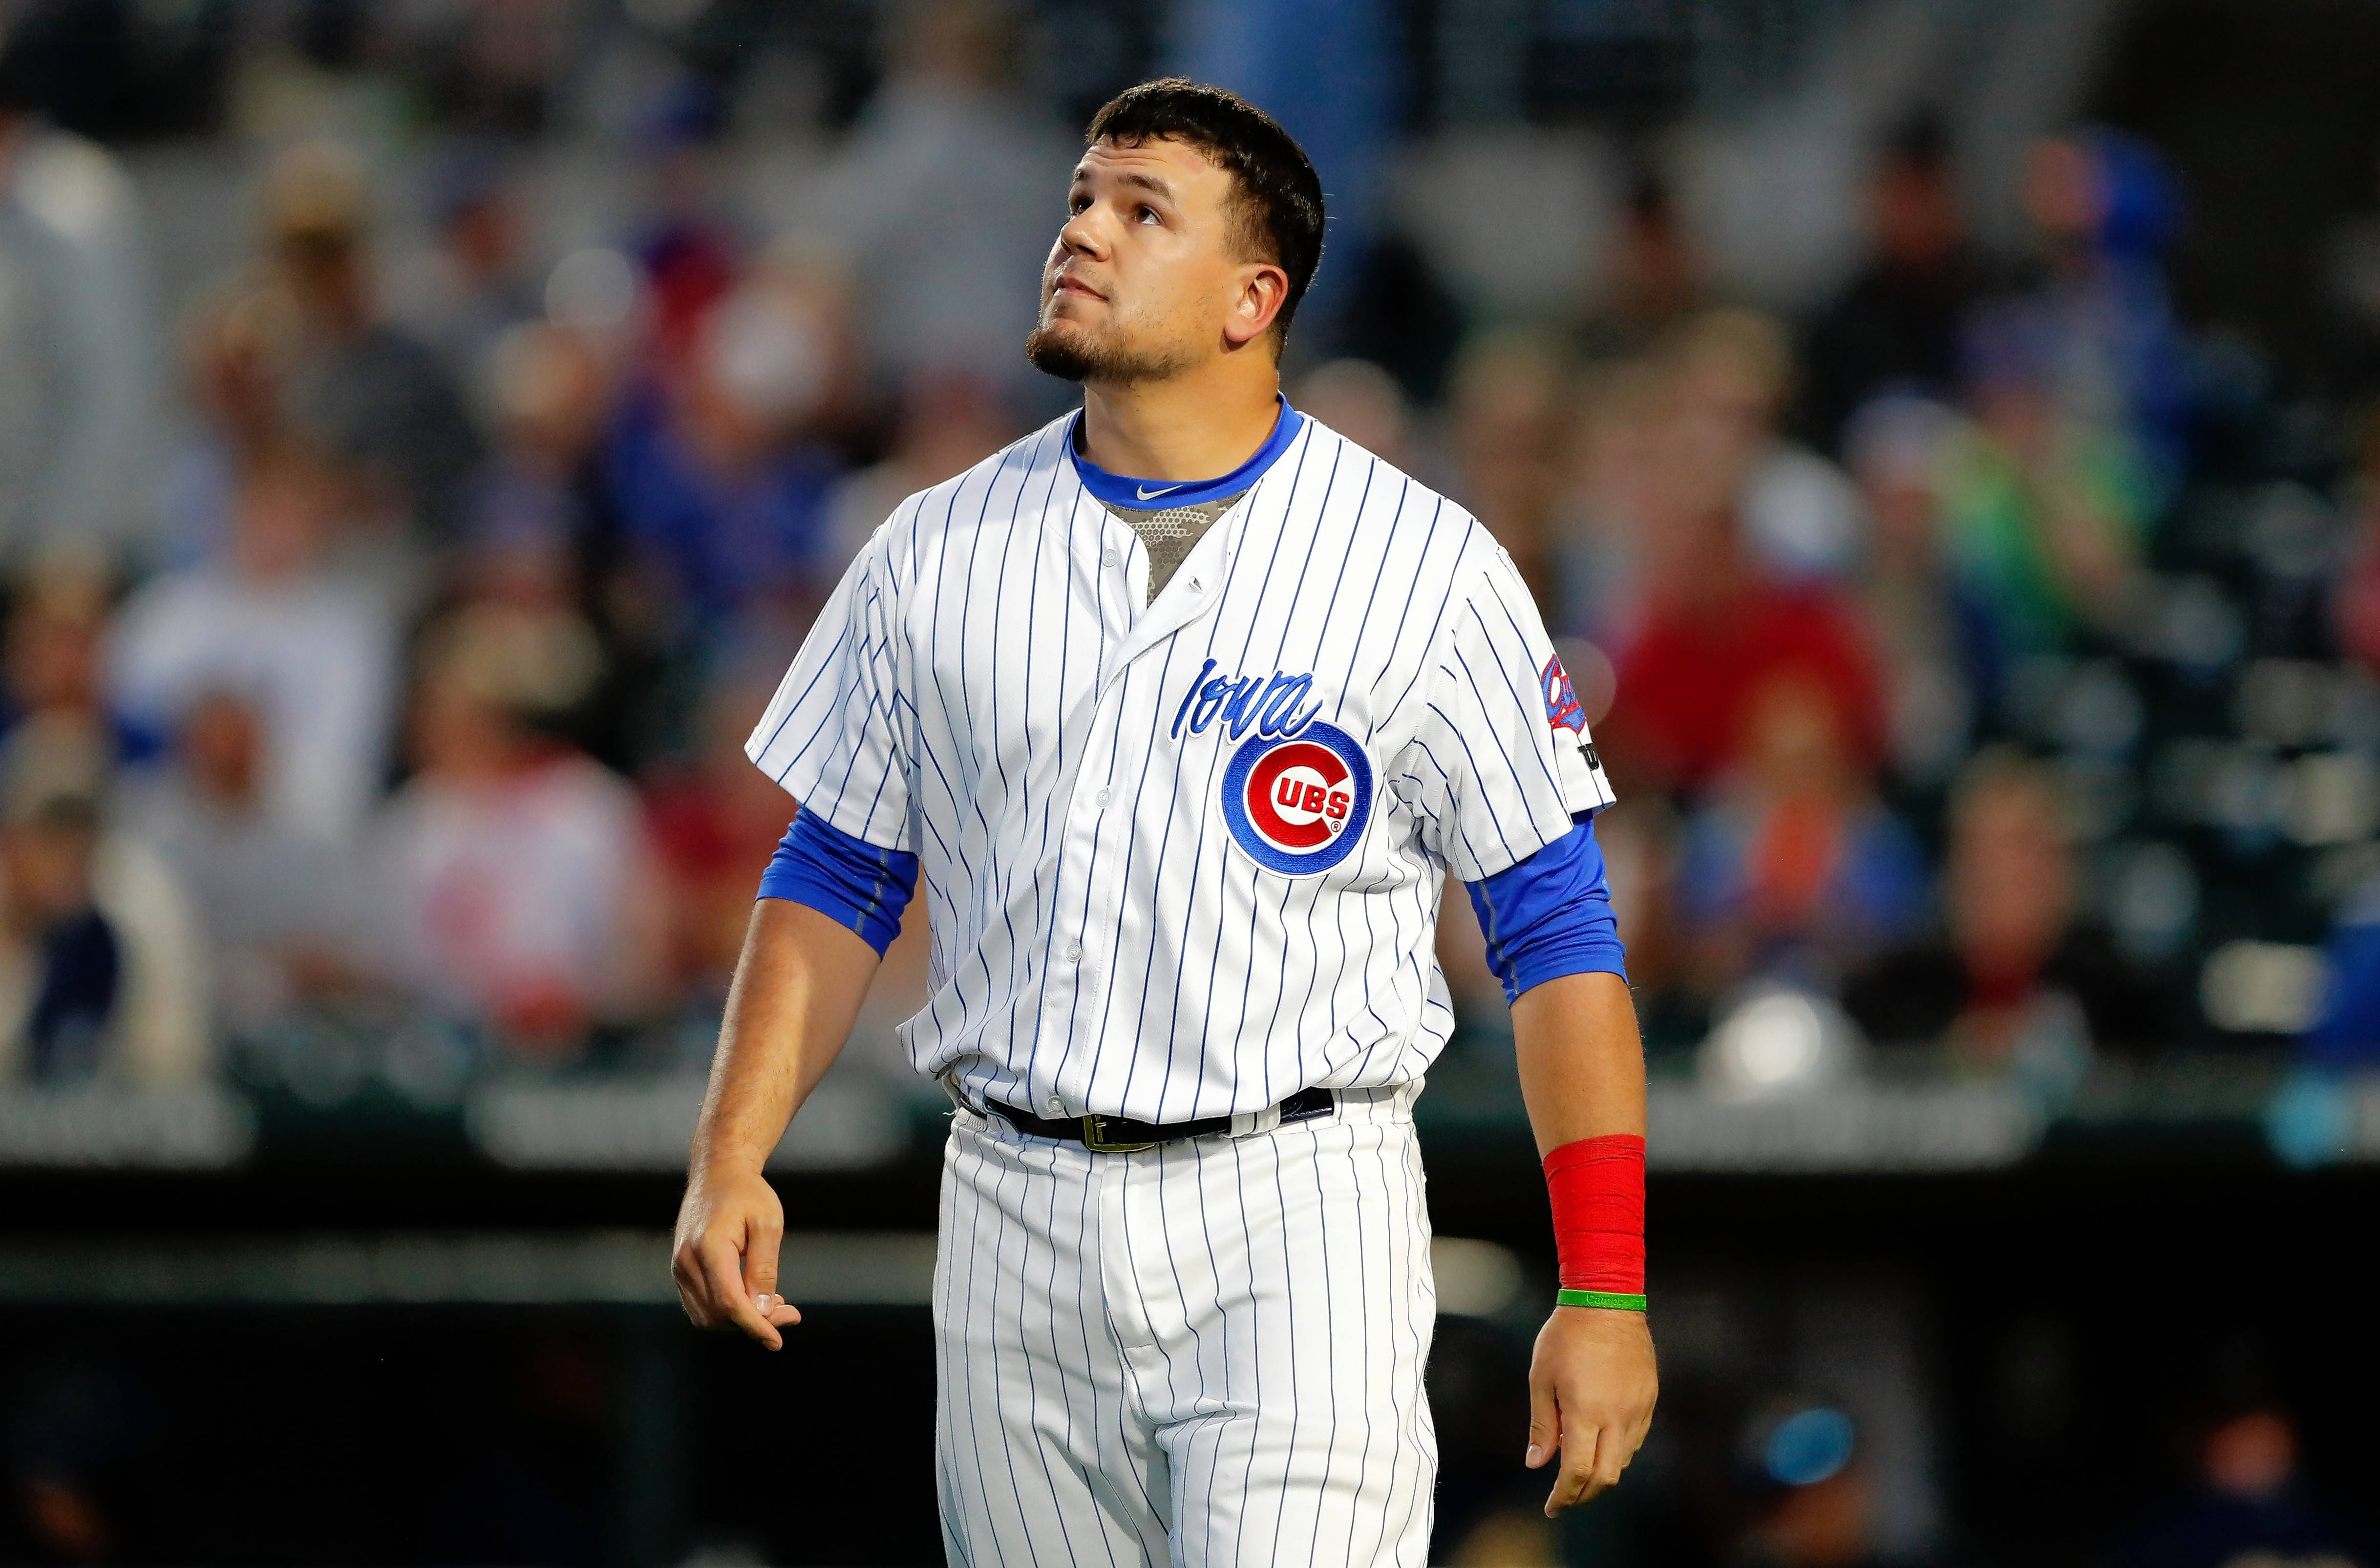 Could Cubs' Schwarber return to leadoff spot?